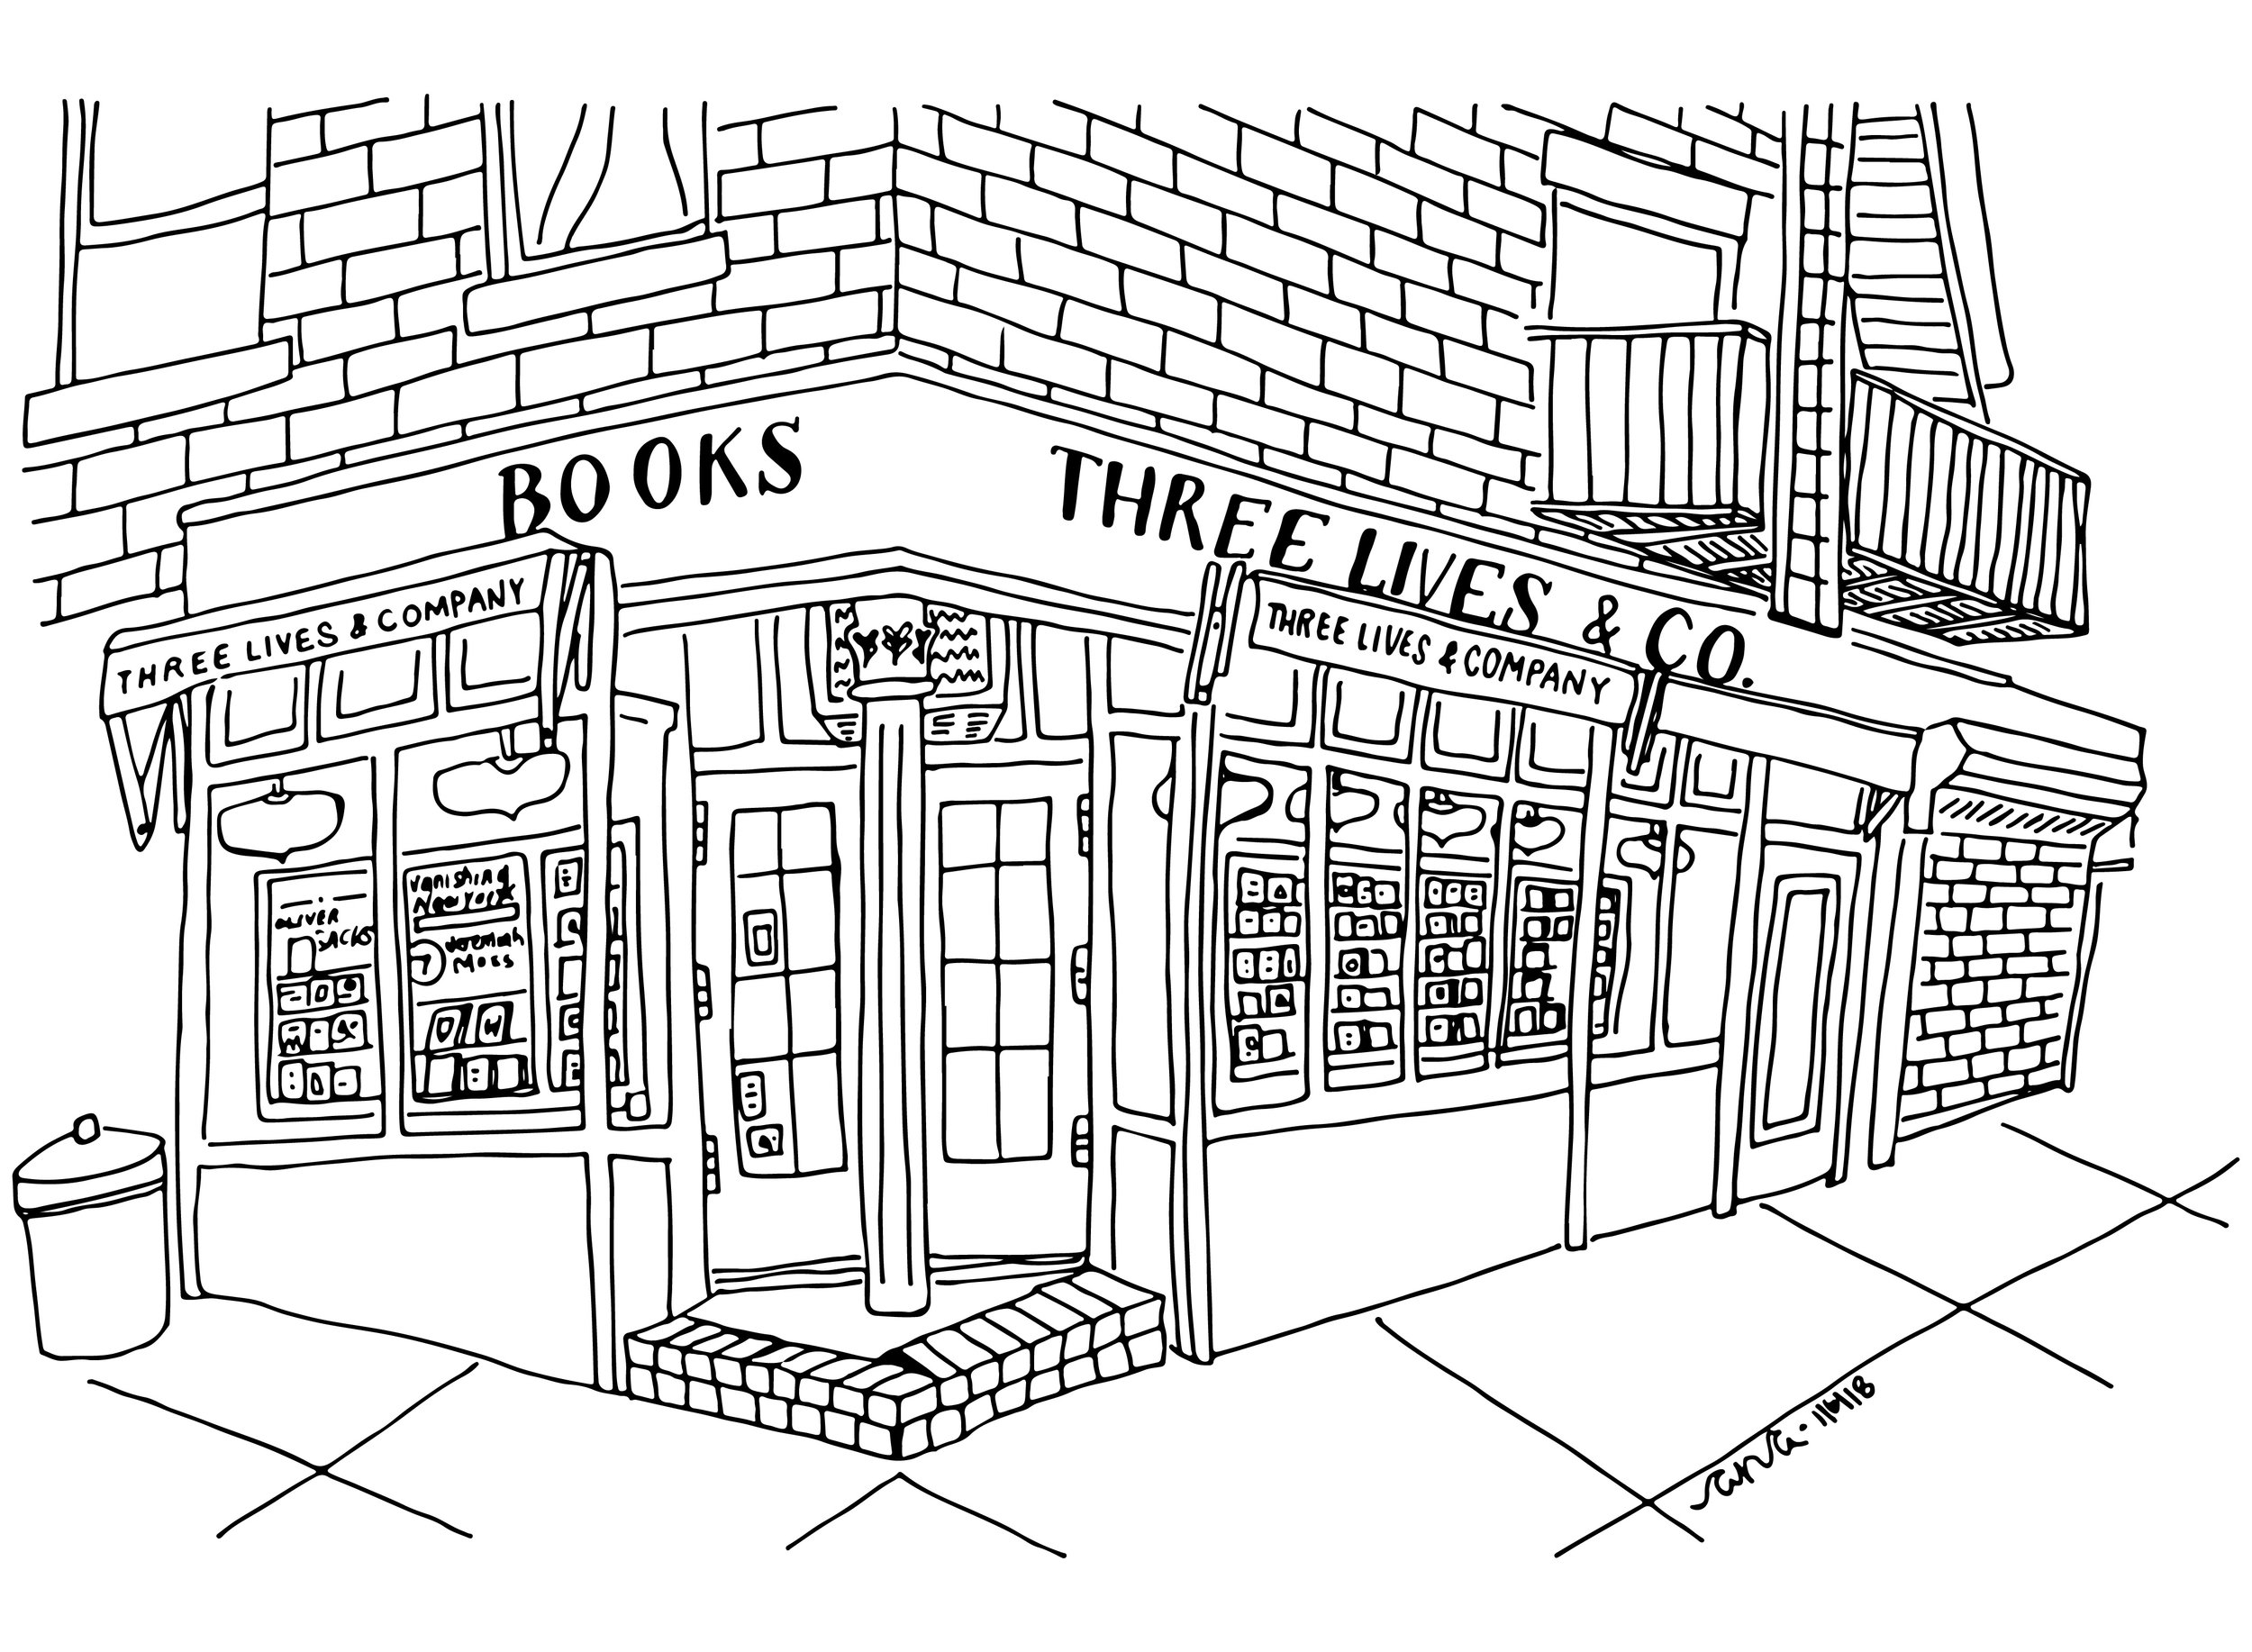 Three Lives and Co Bookstore The Spots Ana Handmade